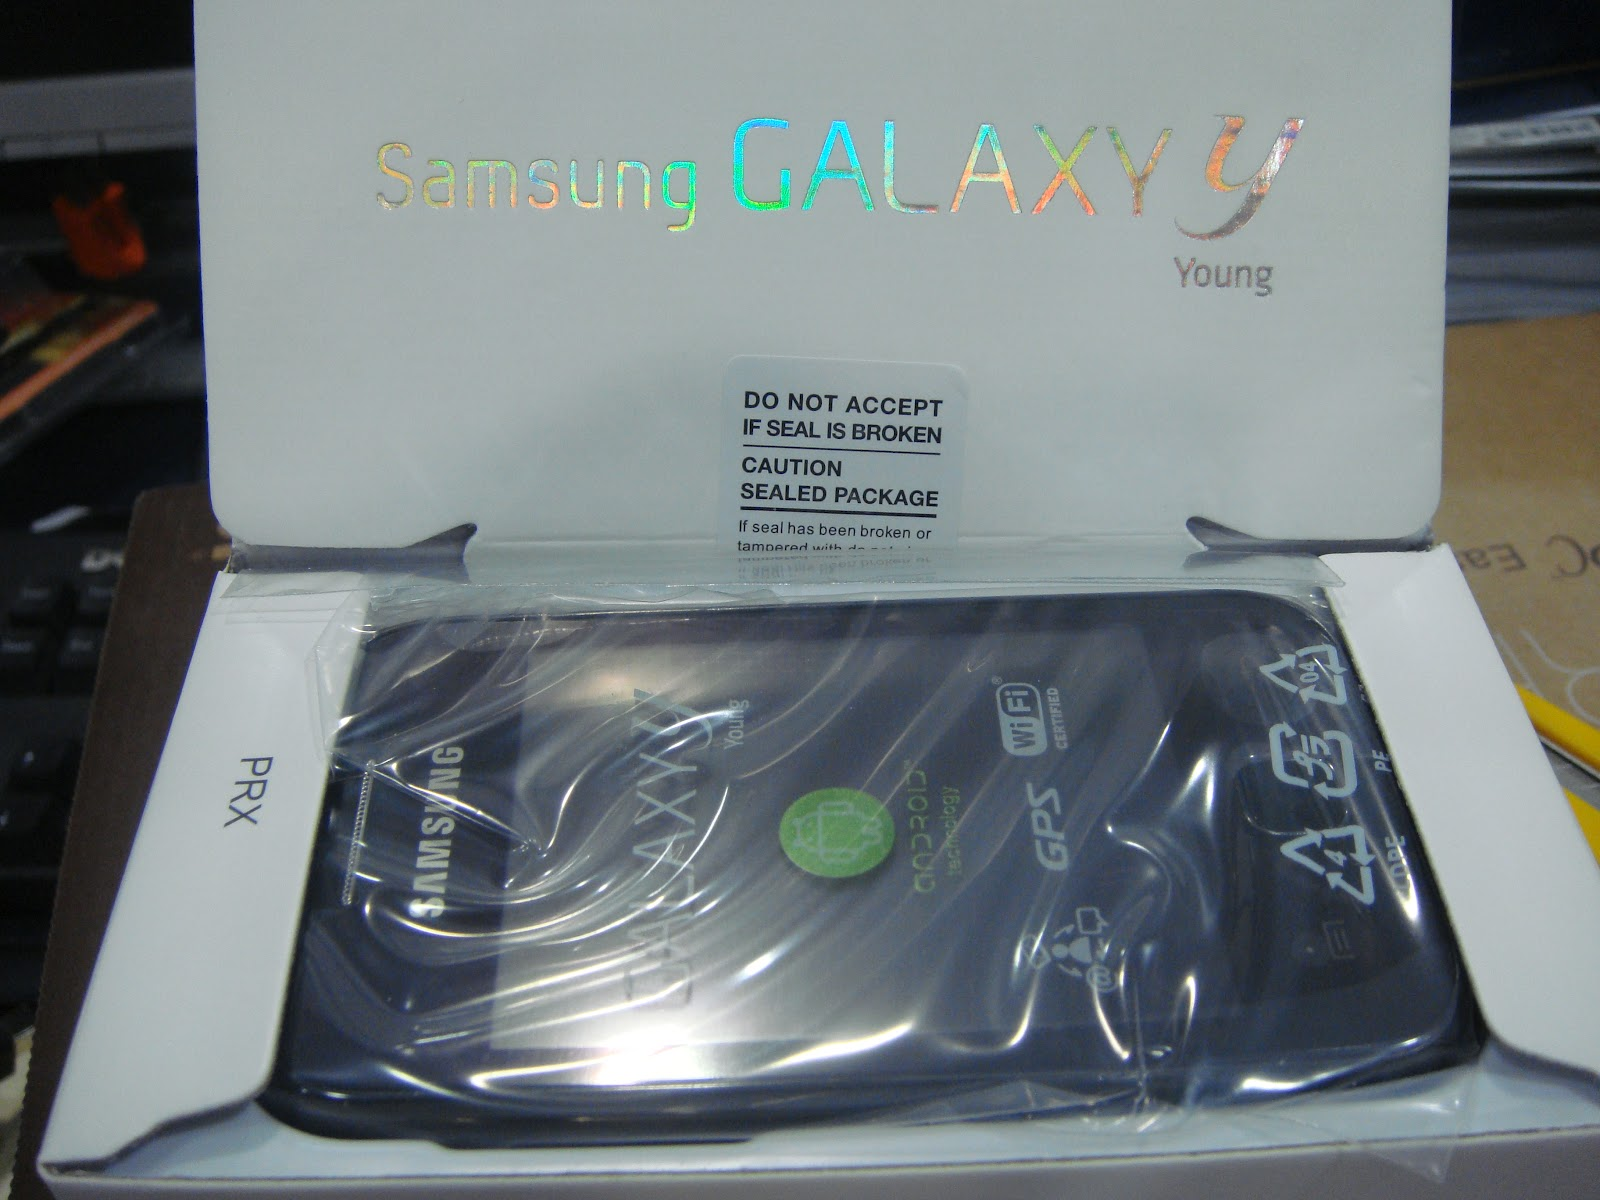 Samsung galaxy y gt s5360 unboxing and review the official site of